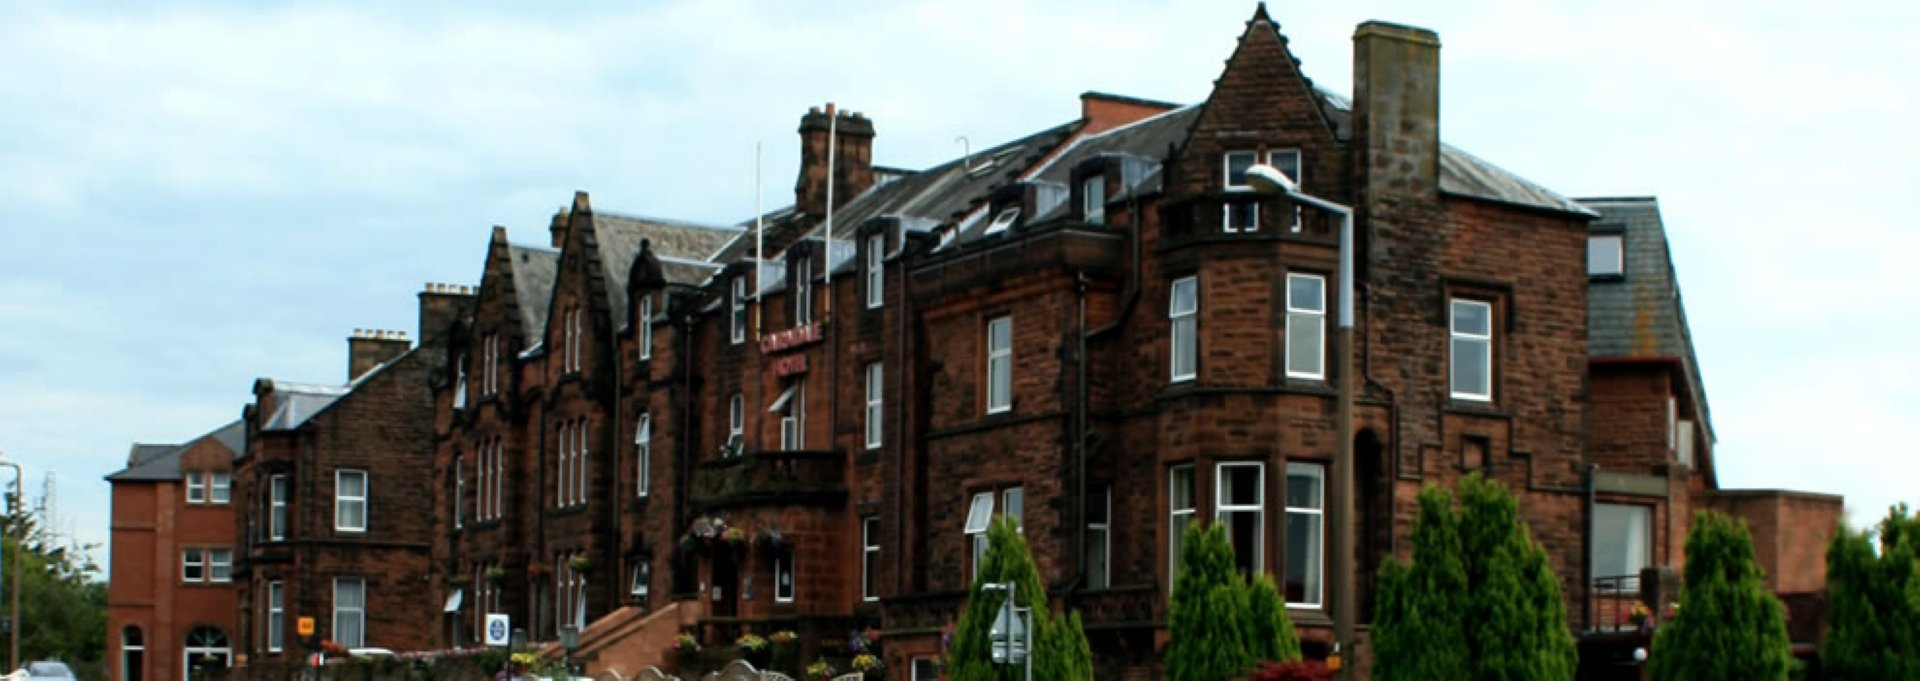 Exterior of The Cairndale Hotel in Dumfries